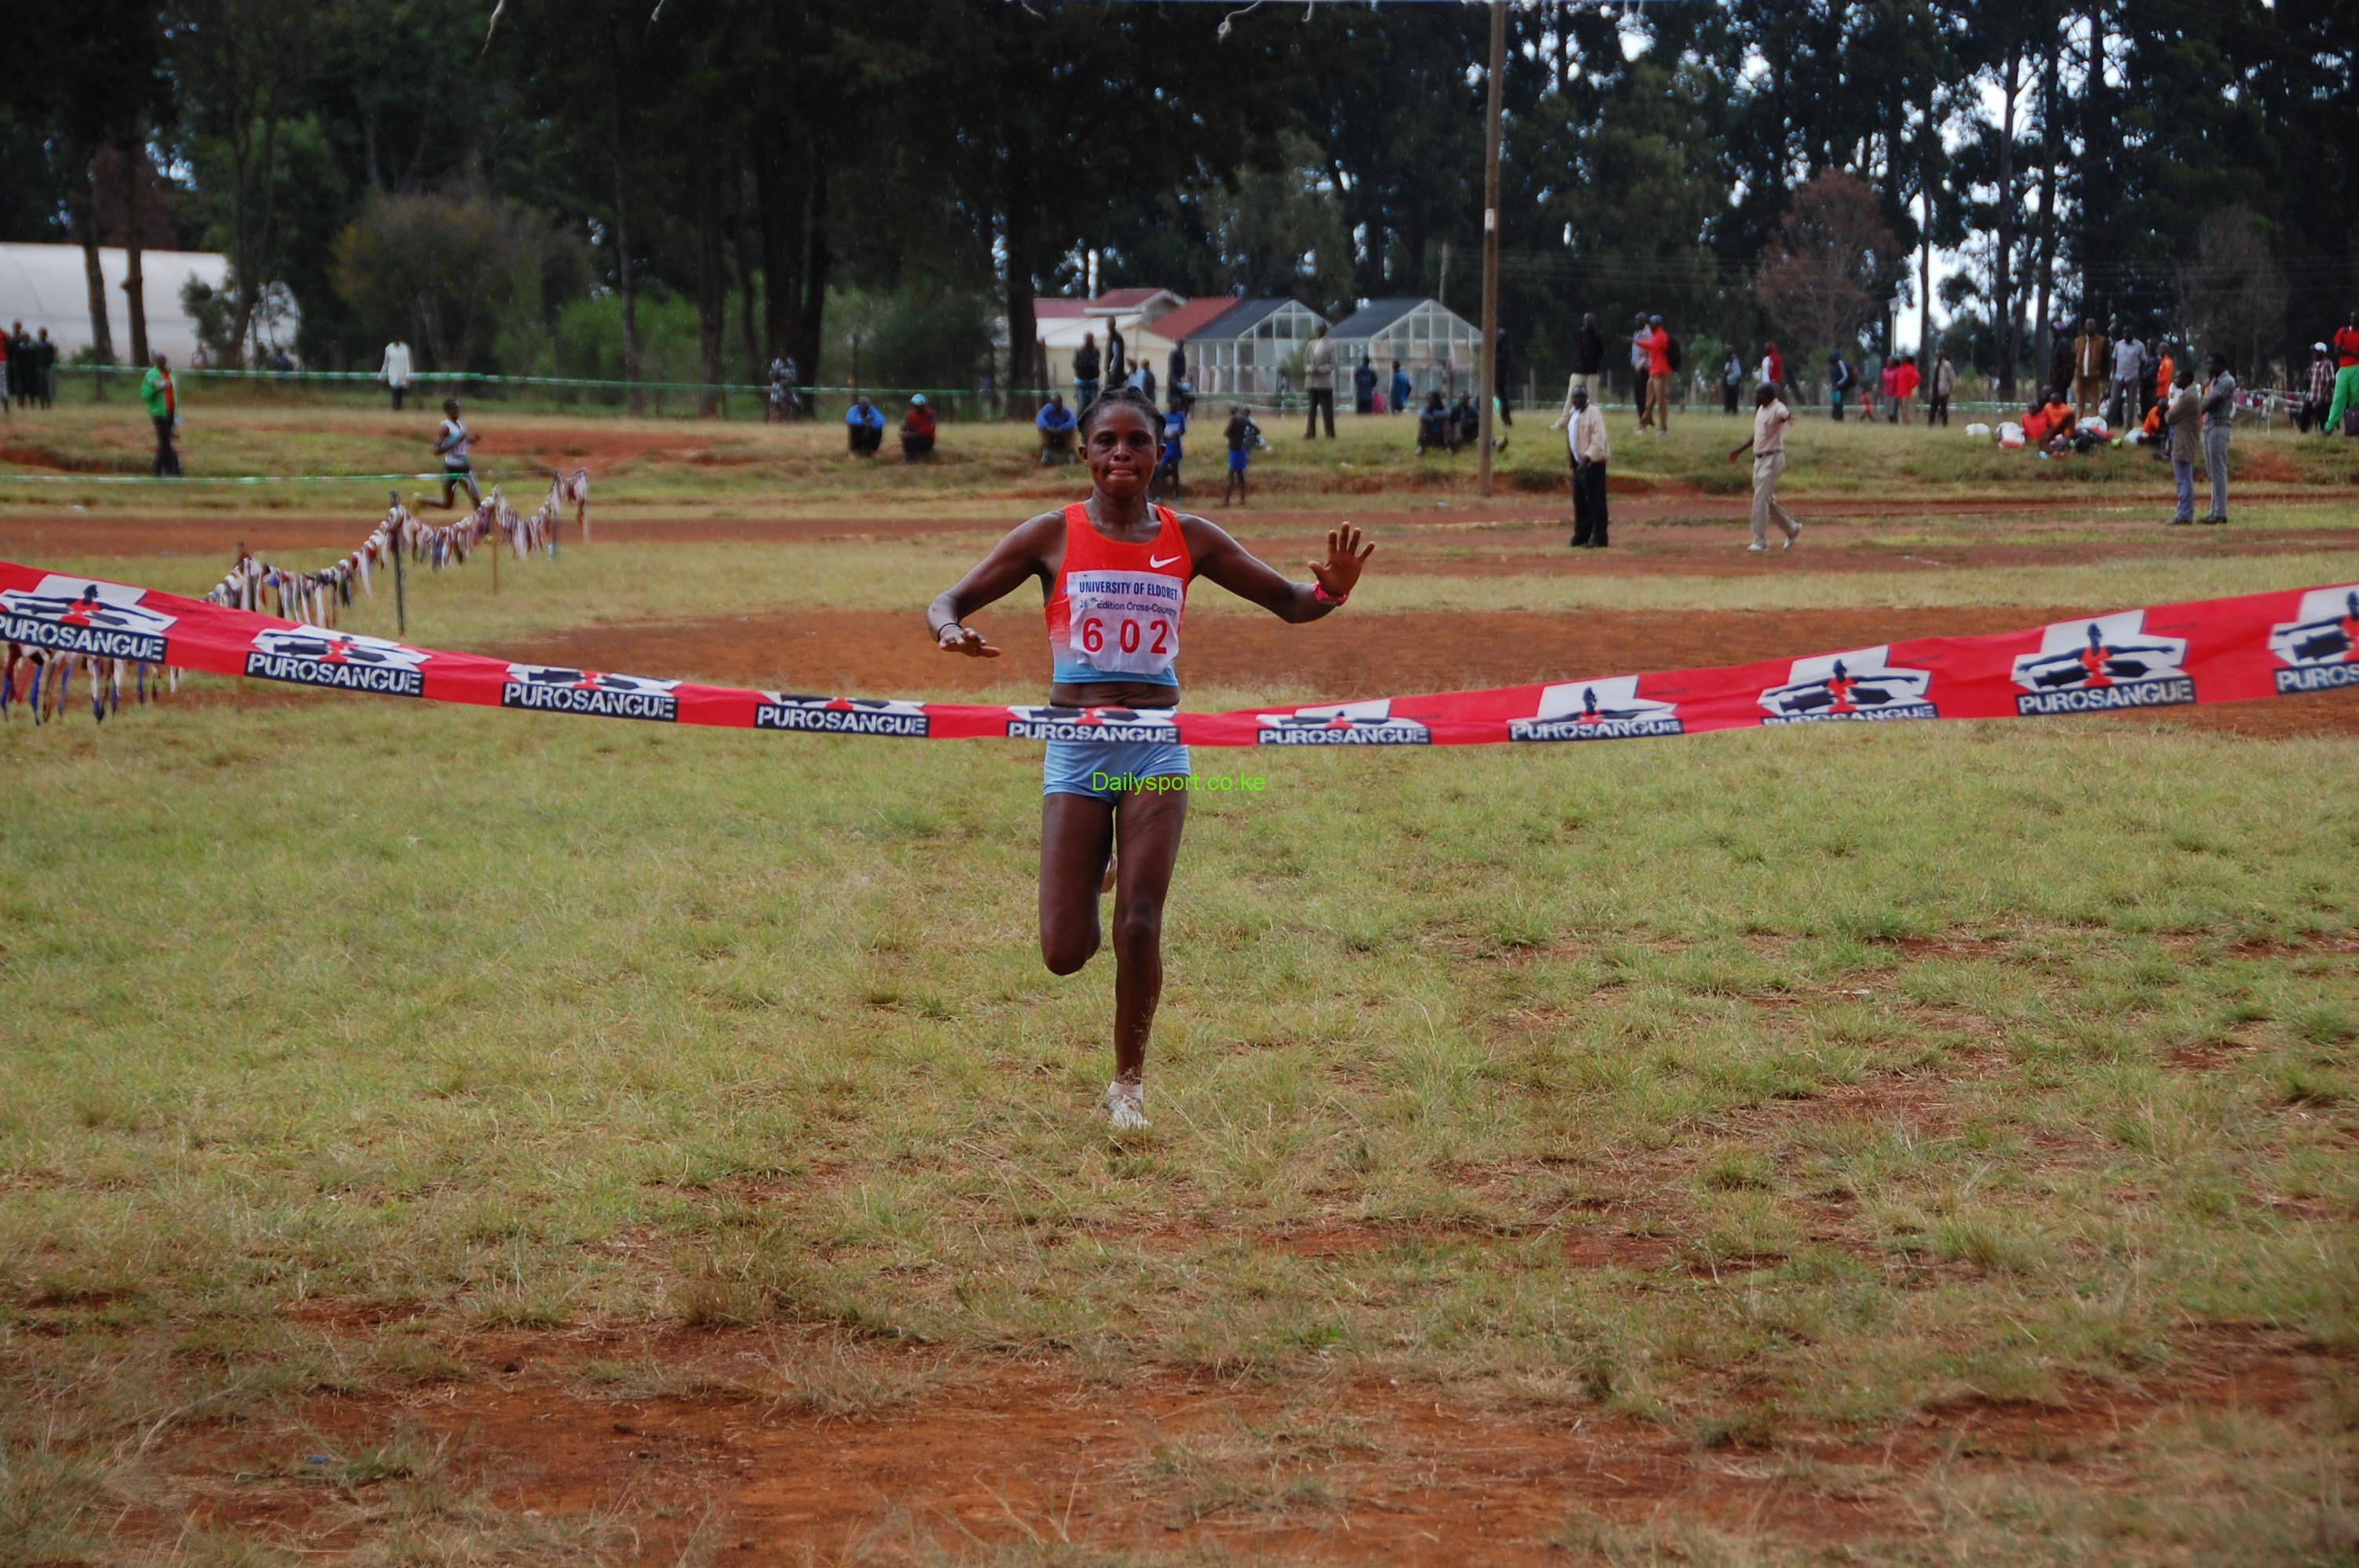 "Pascalia Kipkoech Chepkorir, the 2012 IAAF World Half marathon bronze medalist has cleared much hyped speculations that she will not be defending her University of Eldoret (UoE) cross country 8km title when the race gets underway this Saturday. Instead, the Iten based road run specialist will be sapping the streets of Valencia in Spain for Valencia Half marathon this Sunday to add her othet title in the 21km distance. With her focus to improve on her time, the 2003 World Youth 3,000m silver medalist said she was on final touches of preparations of training before traveling to the Spanish City. Top form runner said she is ready to compete in Valencia to improve on her 67:17 personal best in the 21km distance. ""I have what it takes to take the title and improve on my time in the Spaniard city since my body is responding well to the training. In Valencia, I want to try my best to finish on the podium but majorly I win will be good for me,"" said Chepkorir. Having won the Berlin half marathon title in 2010, the soft spoken runner has been consistent her youthful age and last weekend she finished third in the Isaiah Kiplagat Memorial Ndalat Gaa cross country, the first in the Athletics Kenya Calendar of events ahead of Africa Cross country and Commonwealth Games. ""I did not run well today because last Sunday I had just run Durban 10km race in South Africa but I have to be contented with what I got,"" said Chepkorir after finishing third in Ndalat on Saturday. Veronica Nyaruai, Paskalia Jepkorir, Durban 10km, Isaac Macharia"